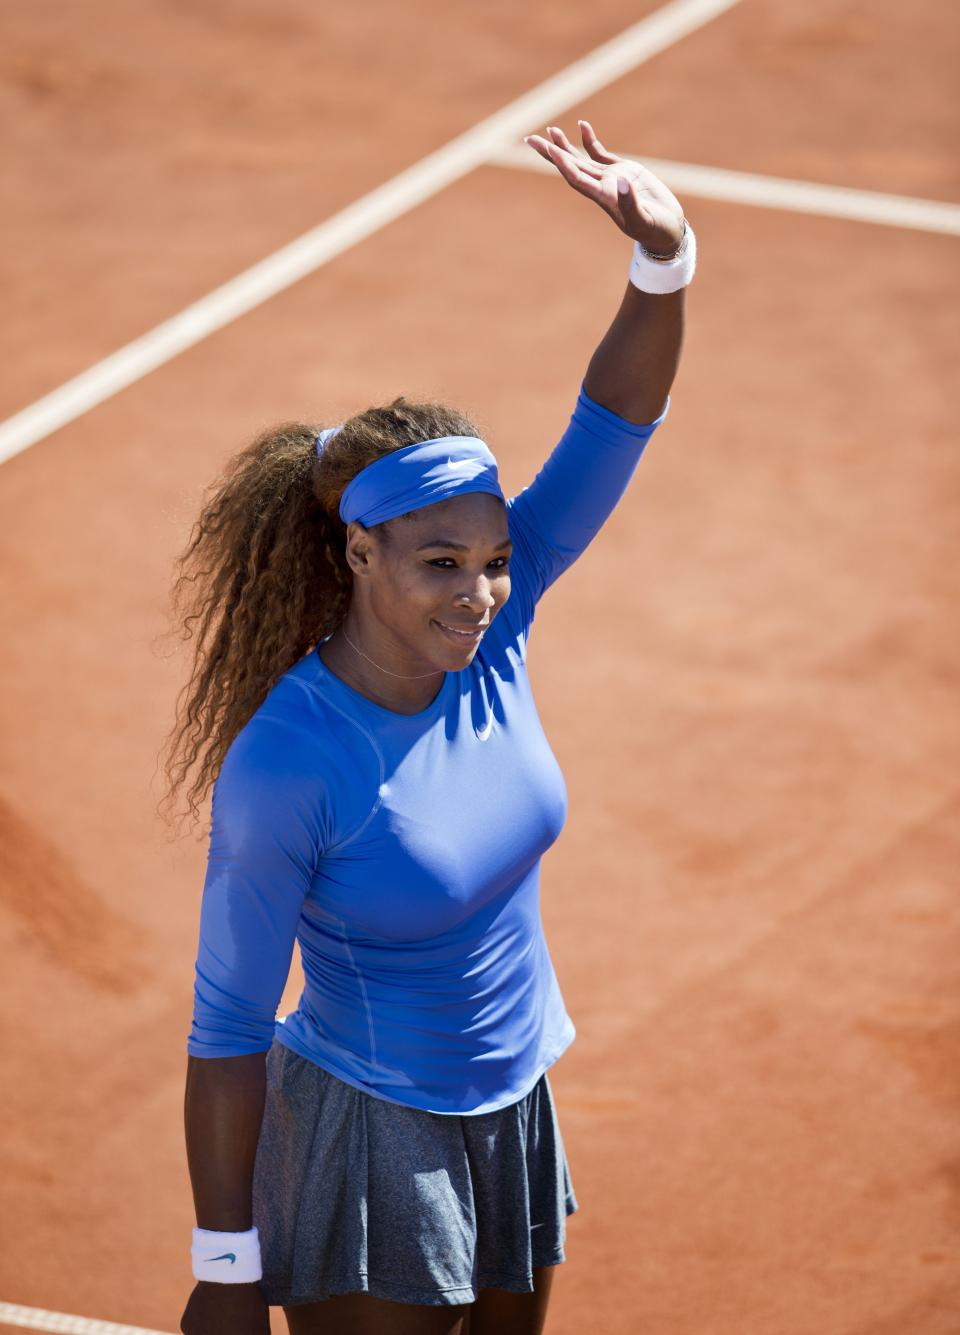 Serena Williams of the U.S. reacts after winning her women's singles semifinal match against Klara Zakopalova of the Czech Republic at the Swedish Open tennis tournament in Bastad, Sweden, Saturday, July 20, 2013. (AP Photo/Scanpix Sweden, Bjorn Larsson Rosvall) SWEDEN OUT